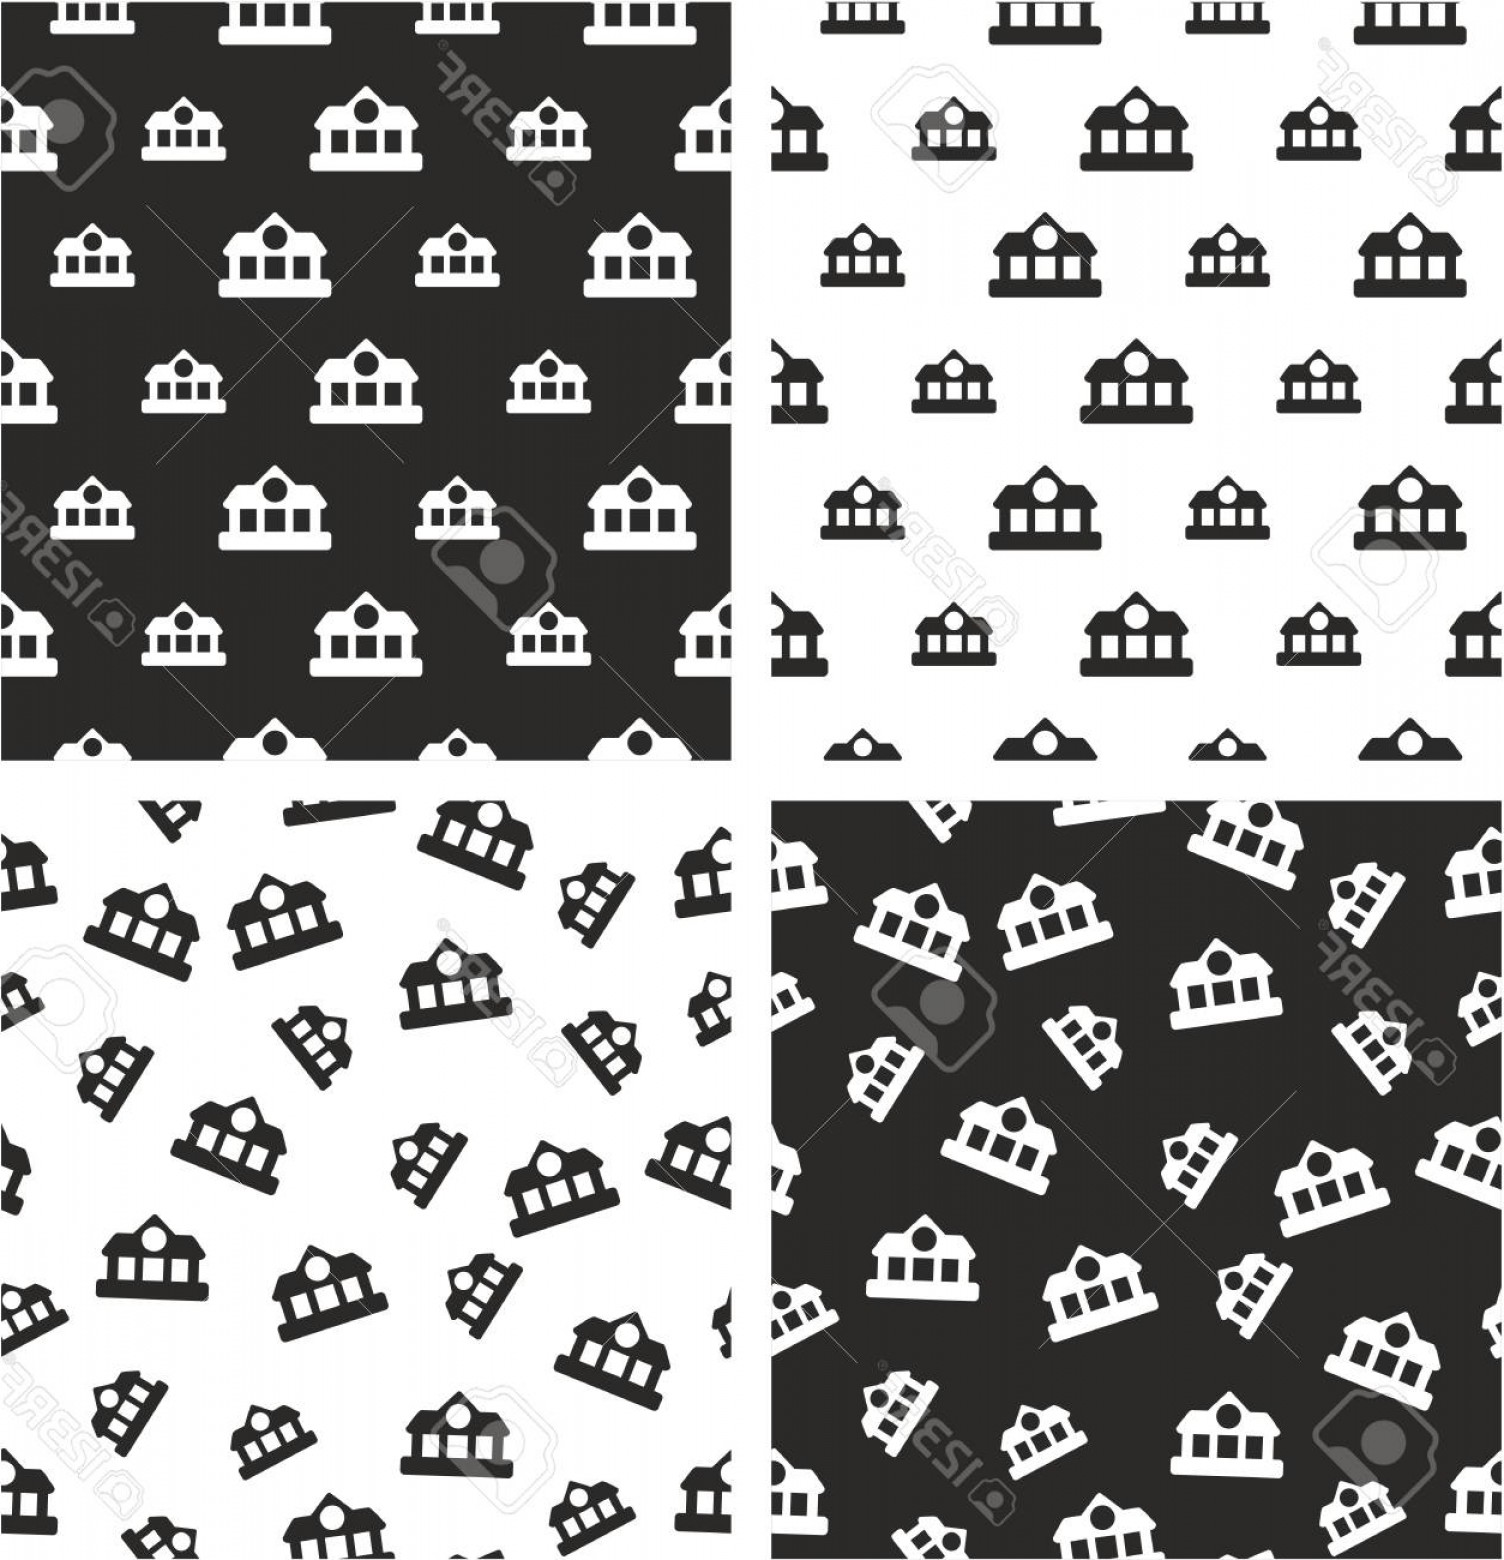 Vector Train Pattern: Photostock Vector Train Or Subway Station Big Small Aligned Random Seamless Pattern Set